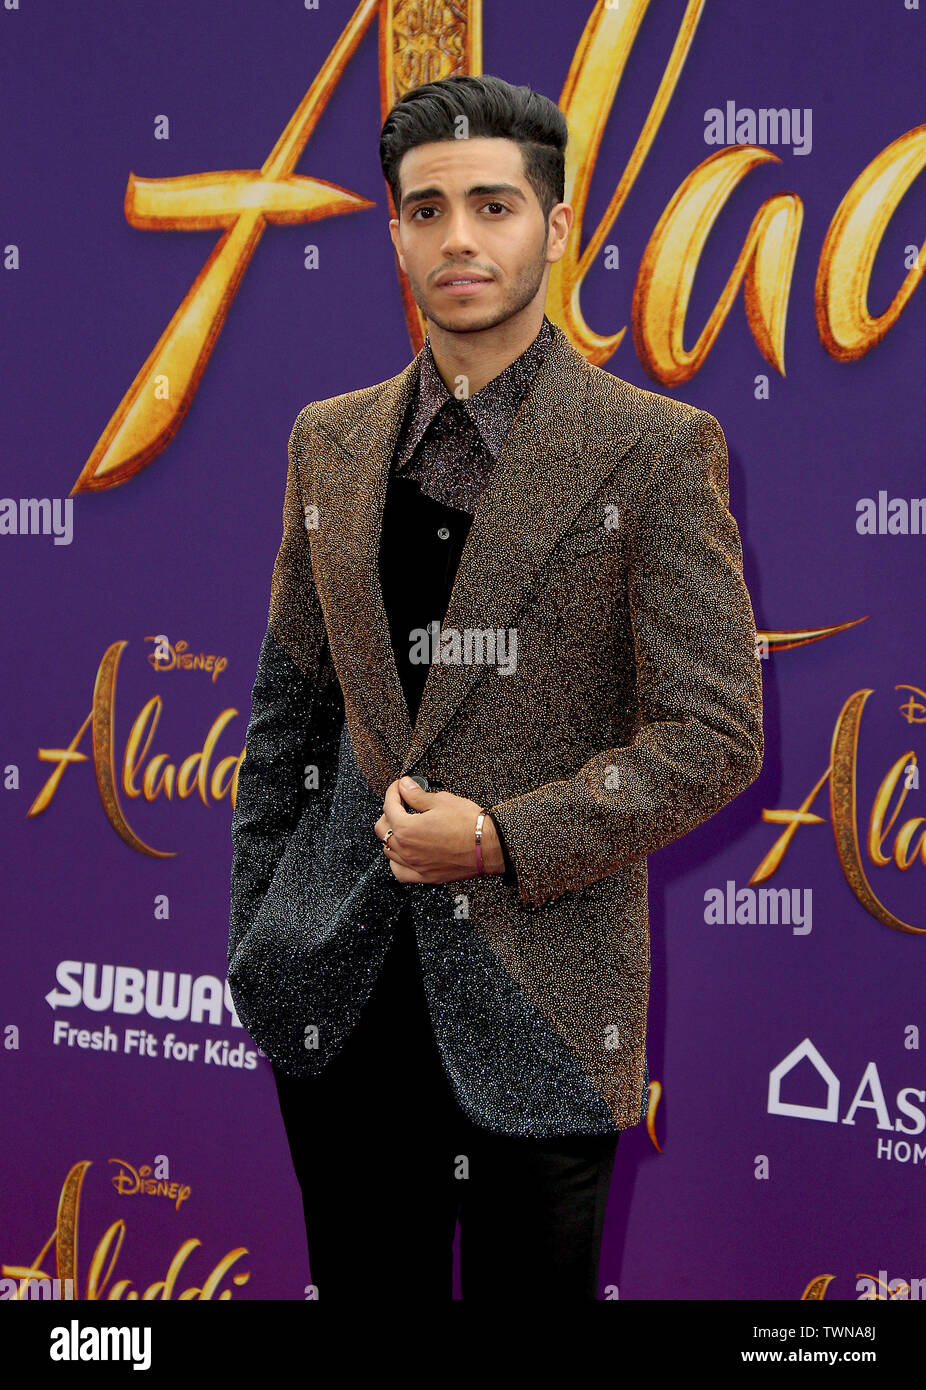 """Disney's Live- Action """"Aladdin"""" Premiere held at the El Capitan Theatre in Hollywood, California. Featuring: Mena Massoud Where: Los Angeles, California, United States When: 21 May 2019 Credit: Adriana M. Barraza/WENN.com - Stock Image"""